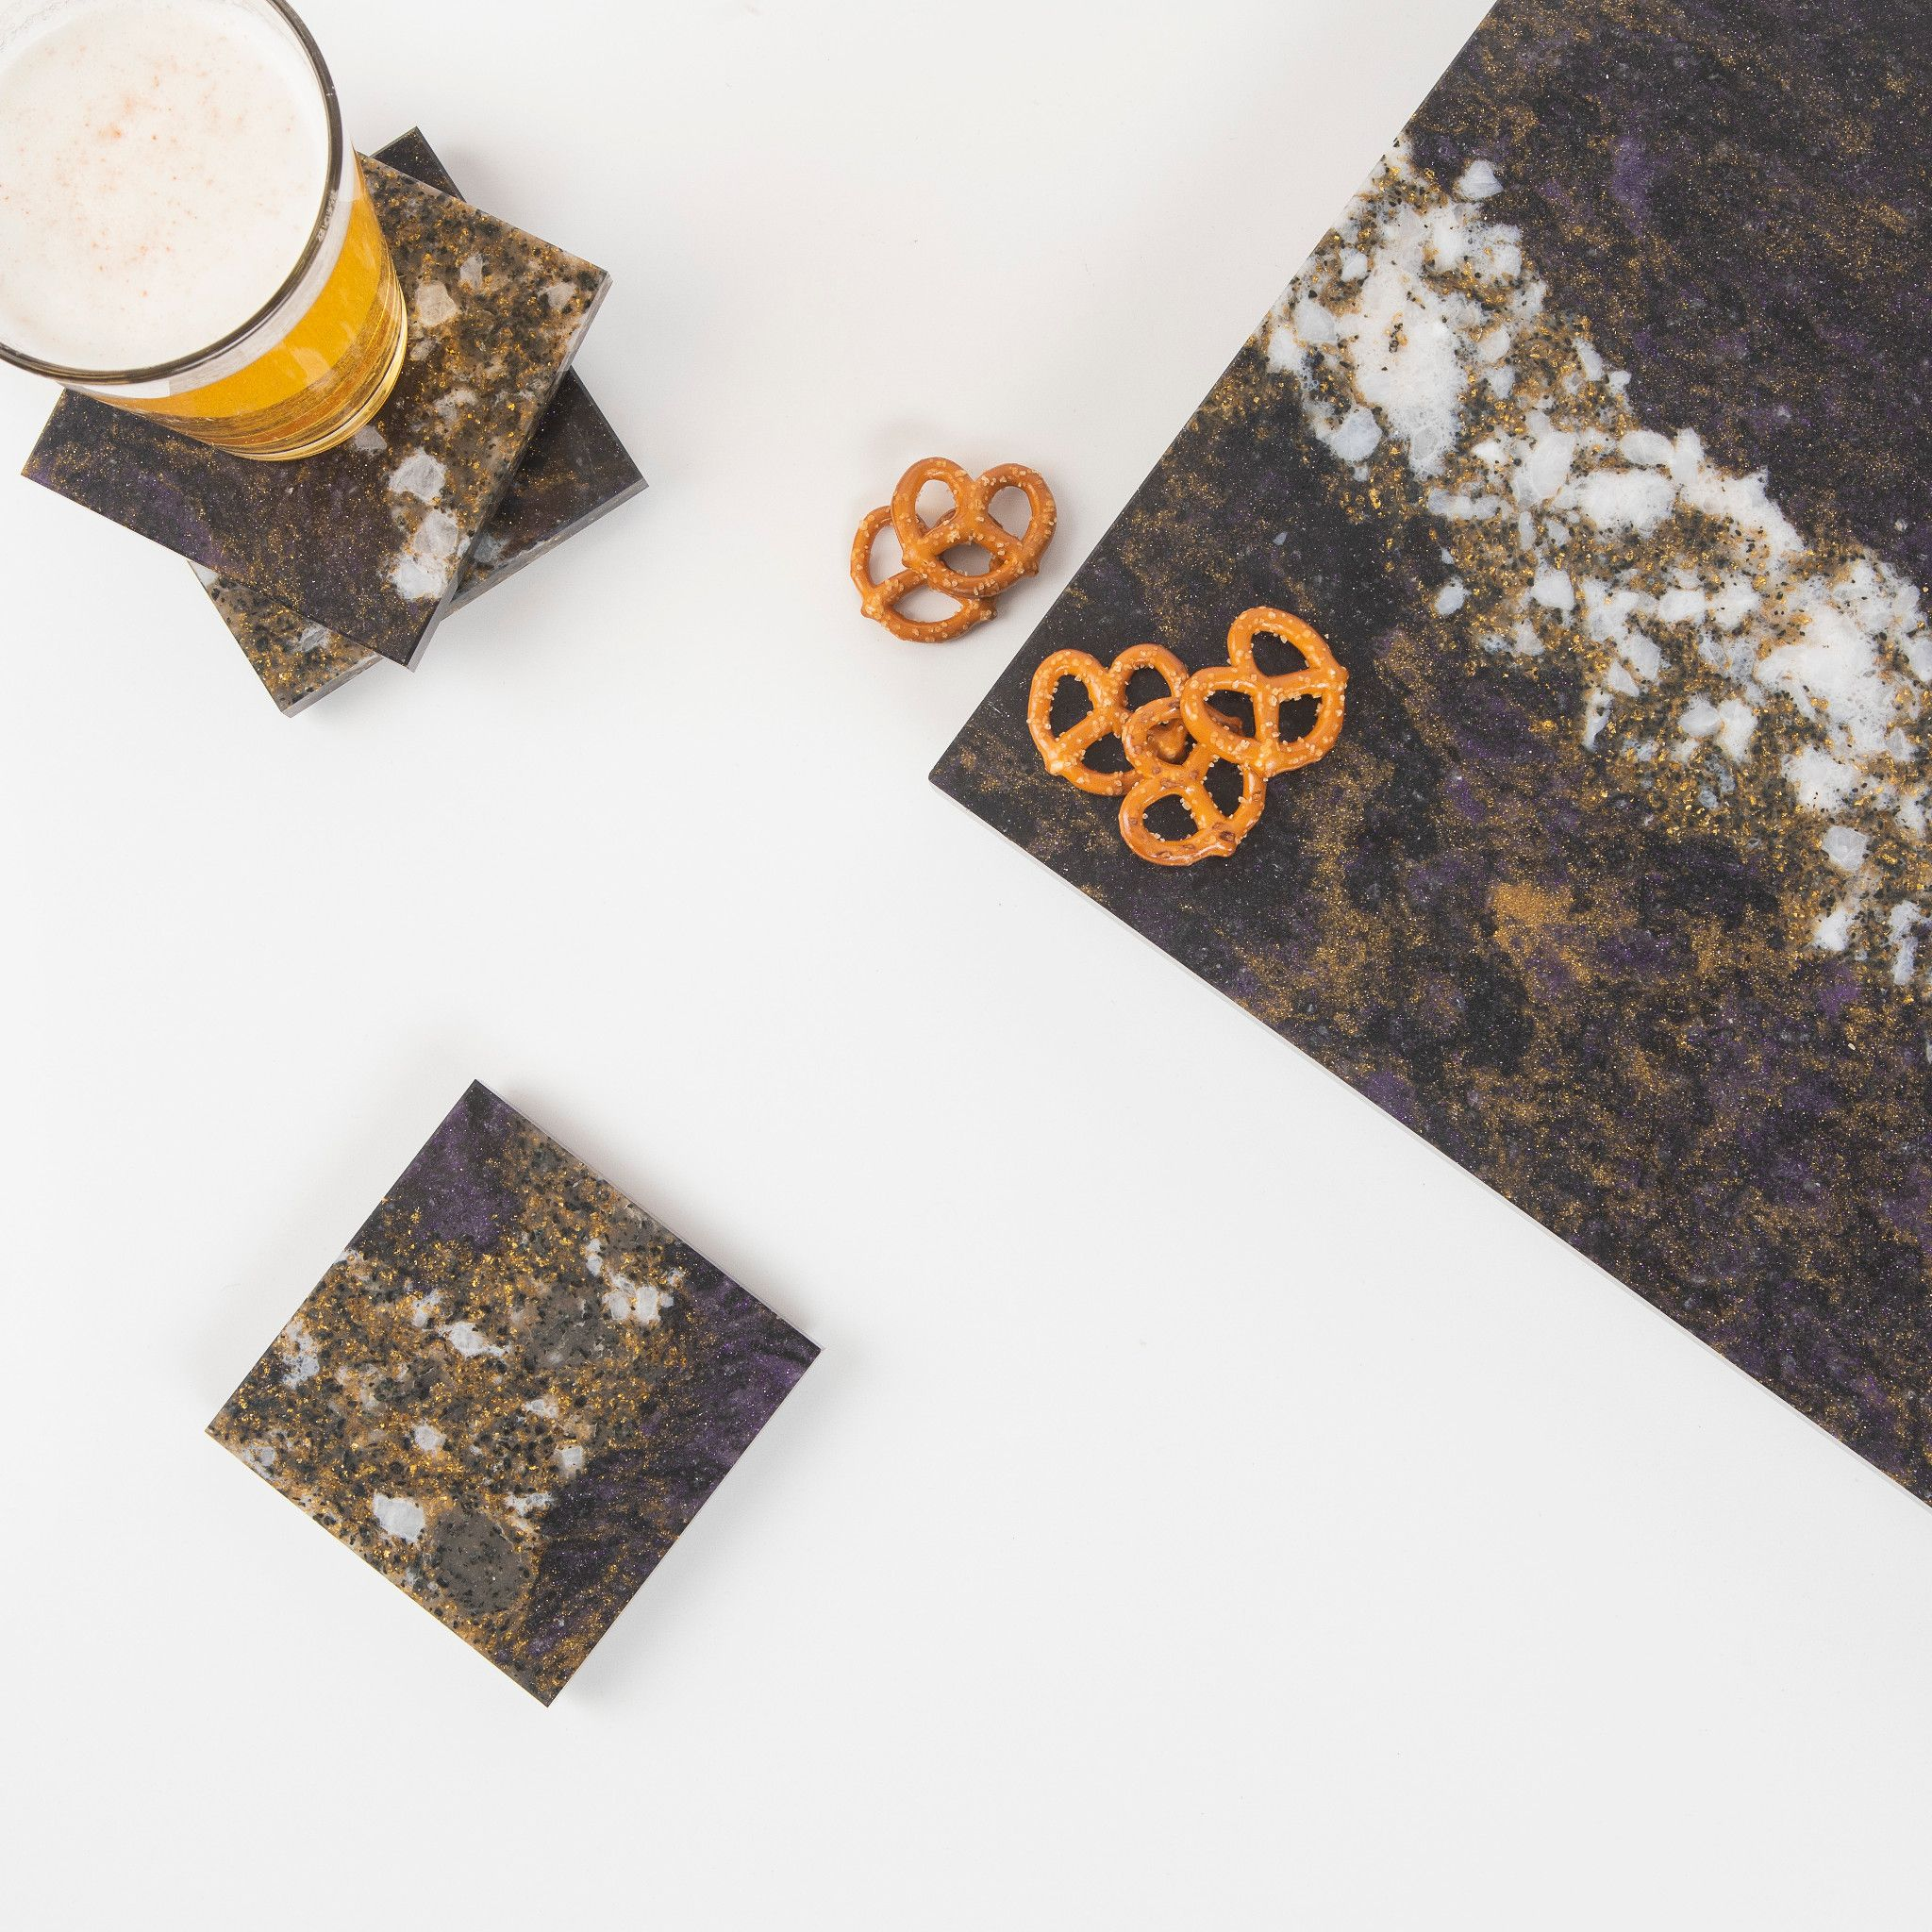 Cambria cheeseboard and coasters in Princetown design.